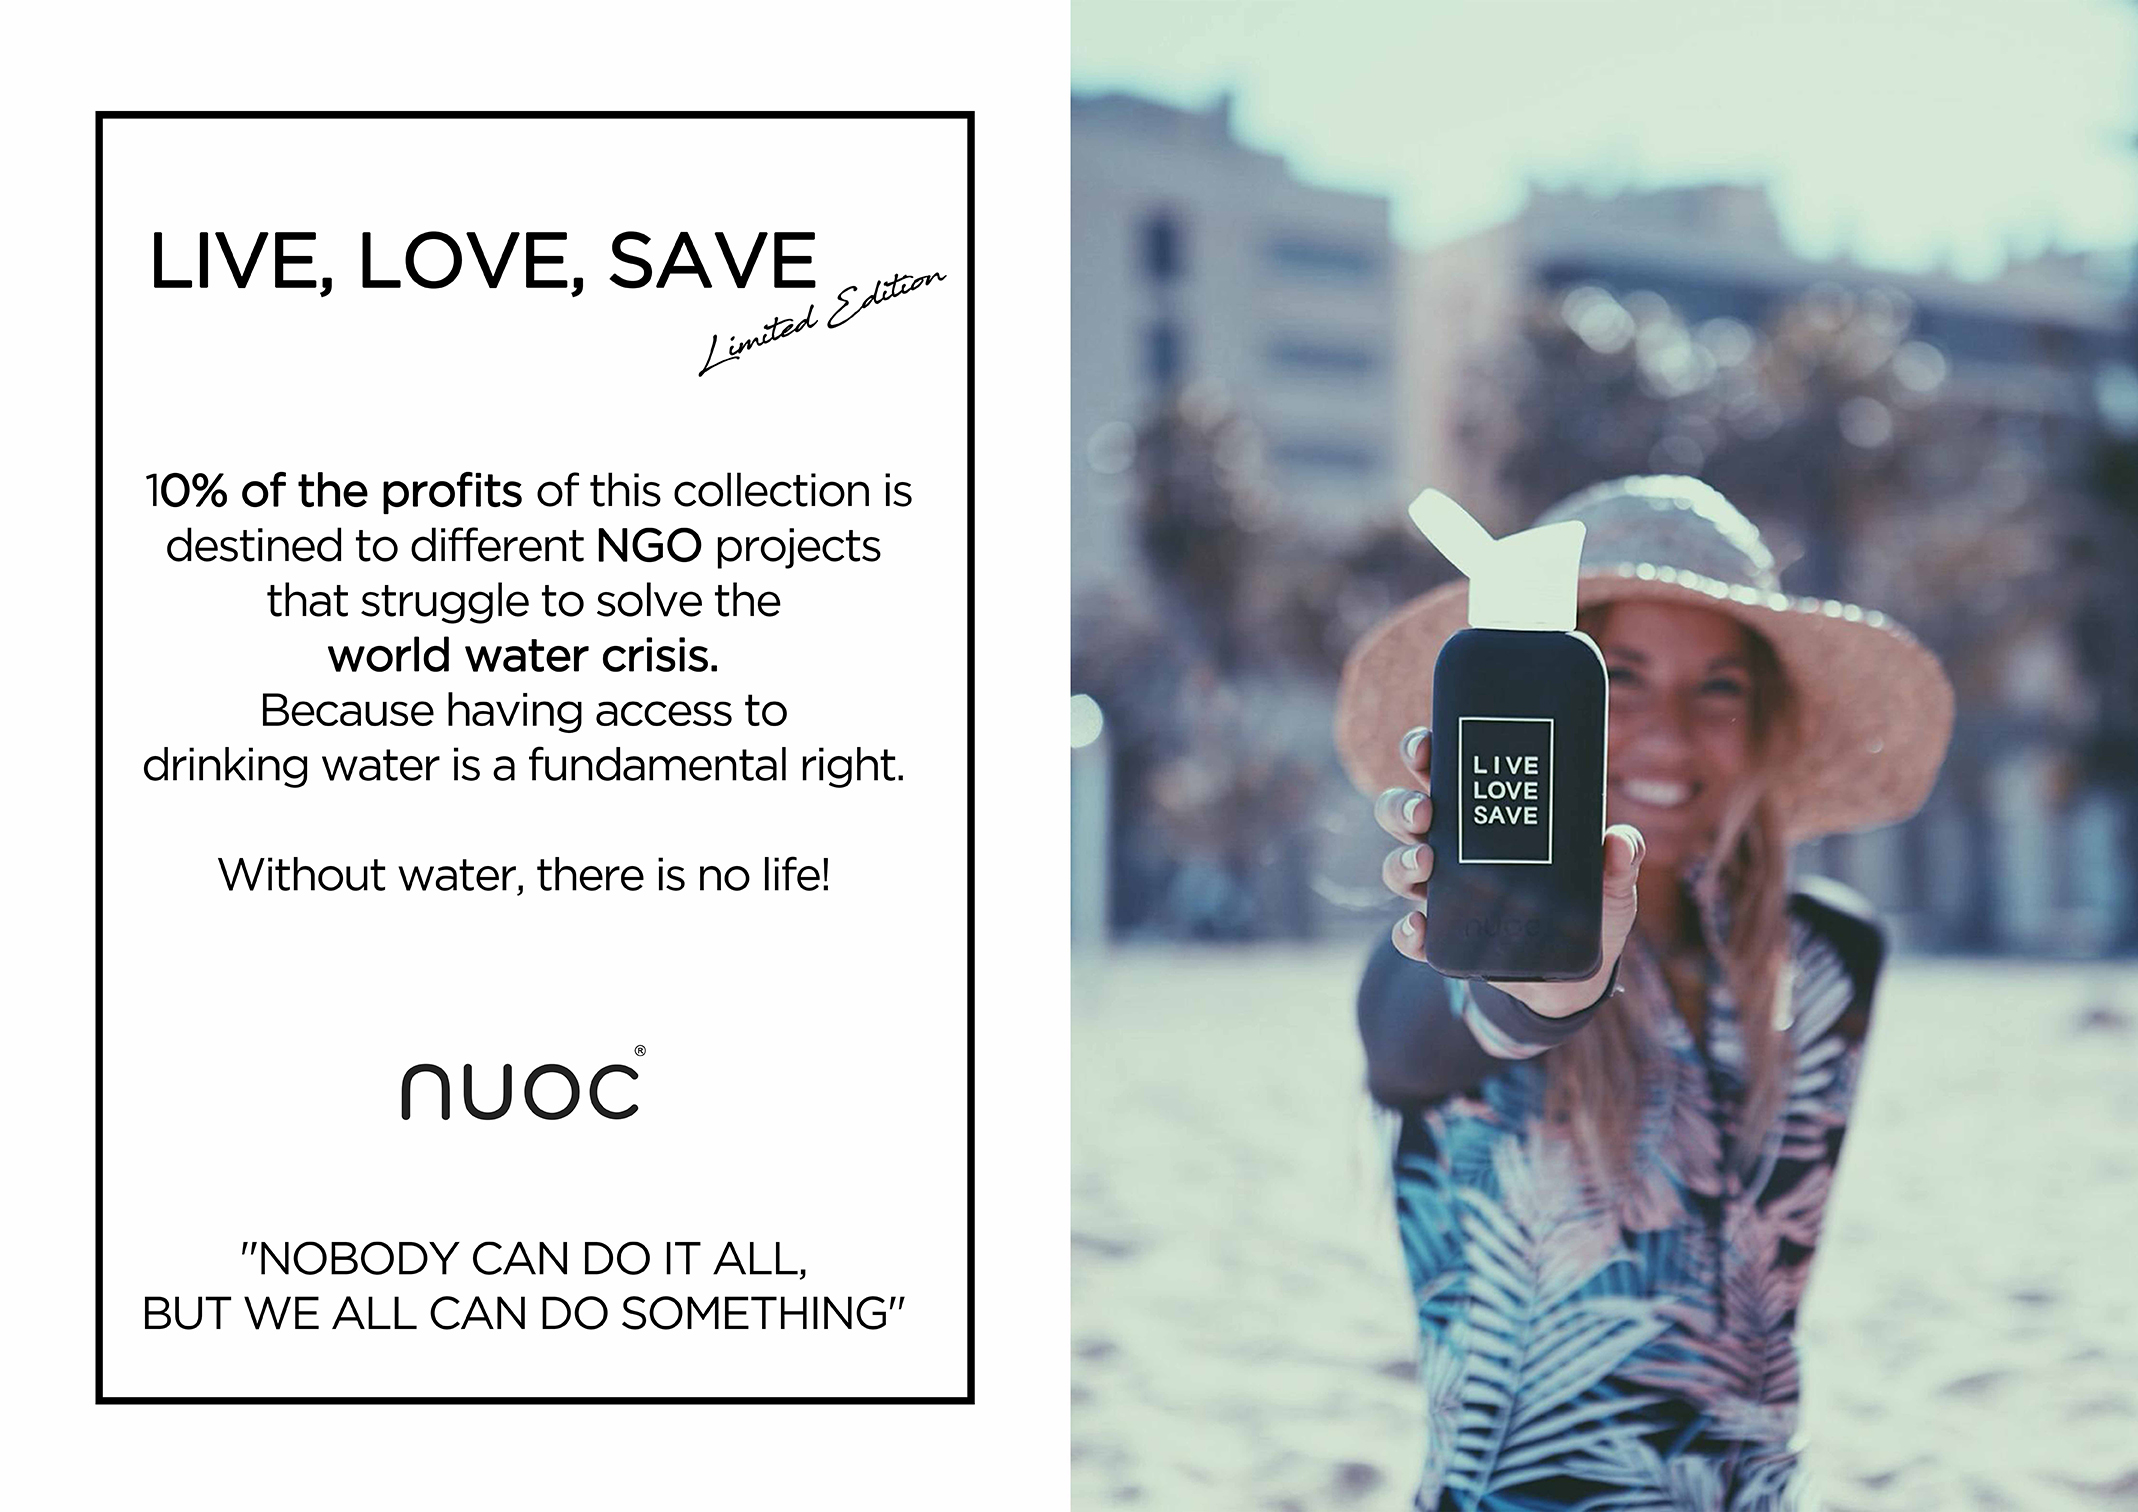 Live, Love, Save - Limited Edition Nuoc